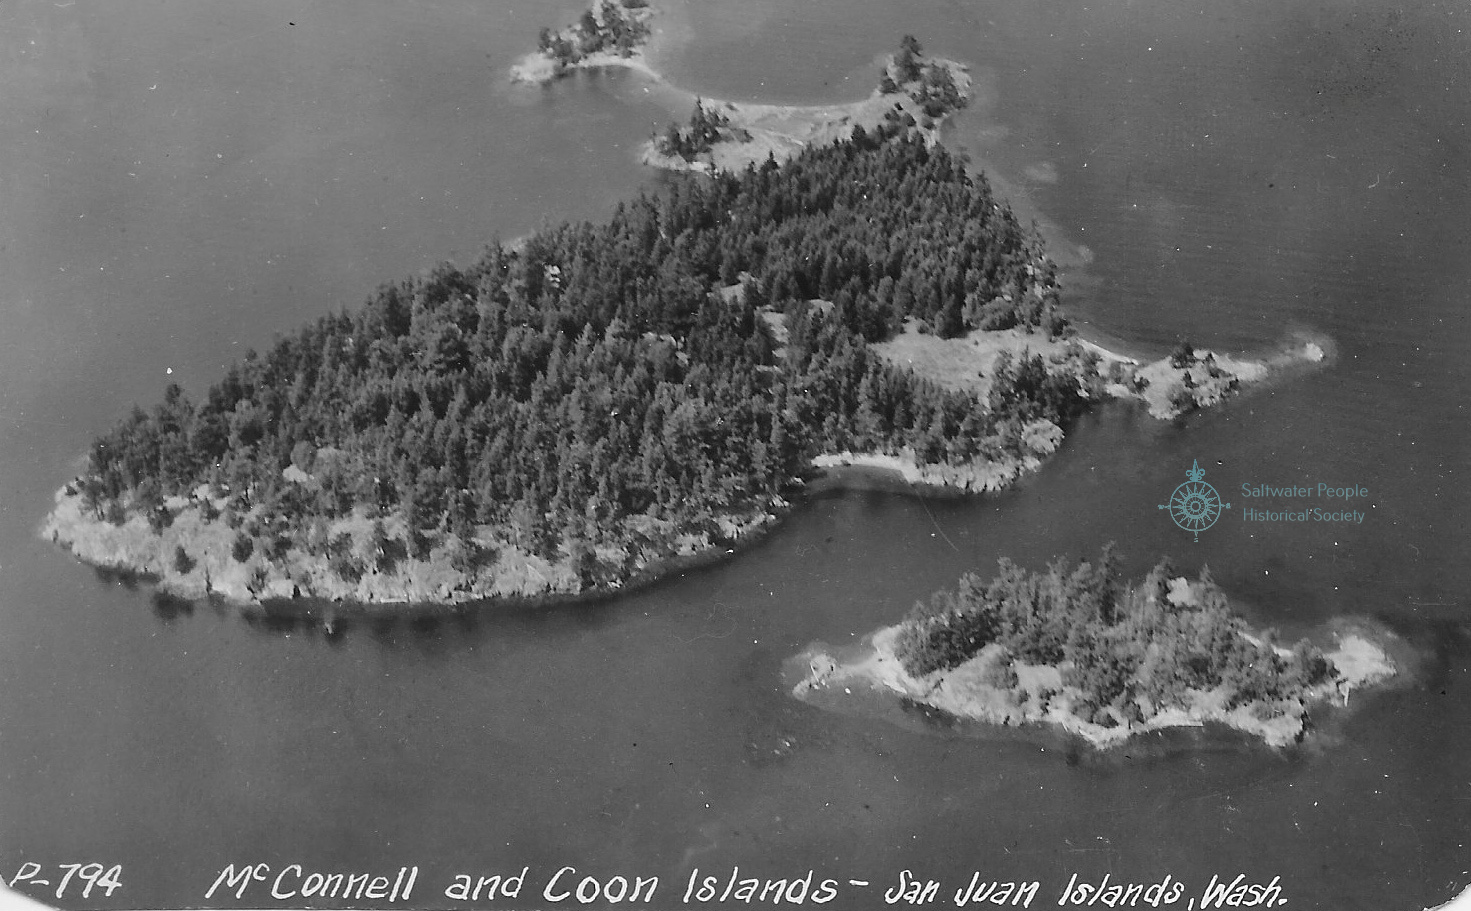 Saltwater People Log Mcconnell Island